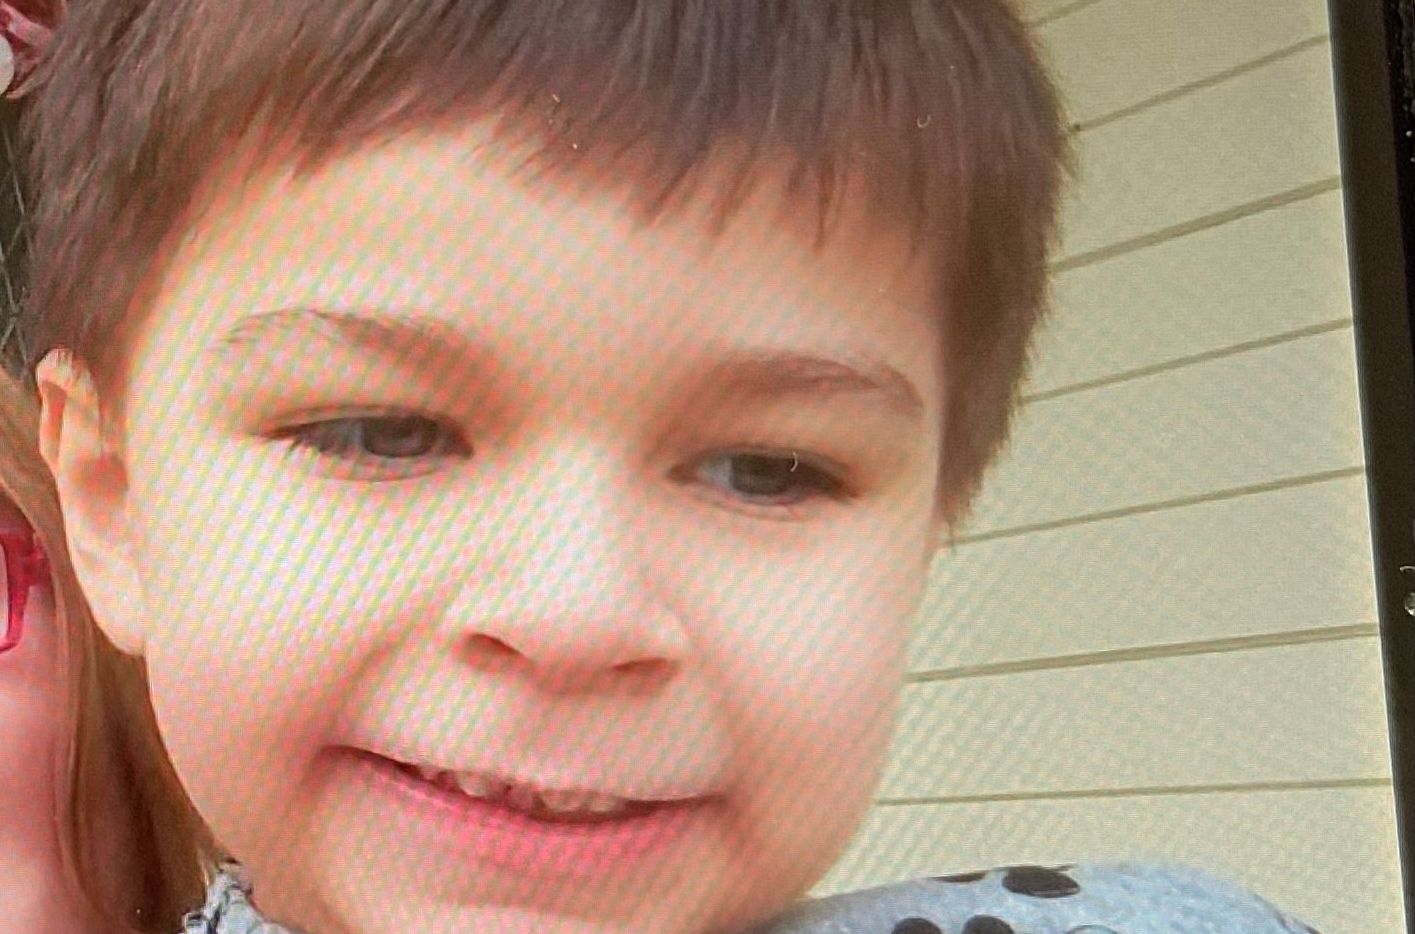 Police say Ashton was taken by his biological mother.